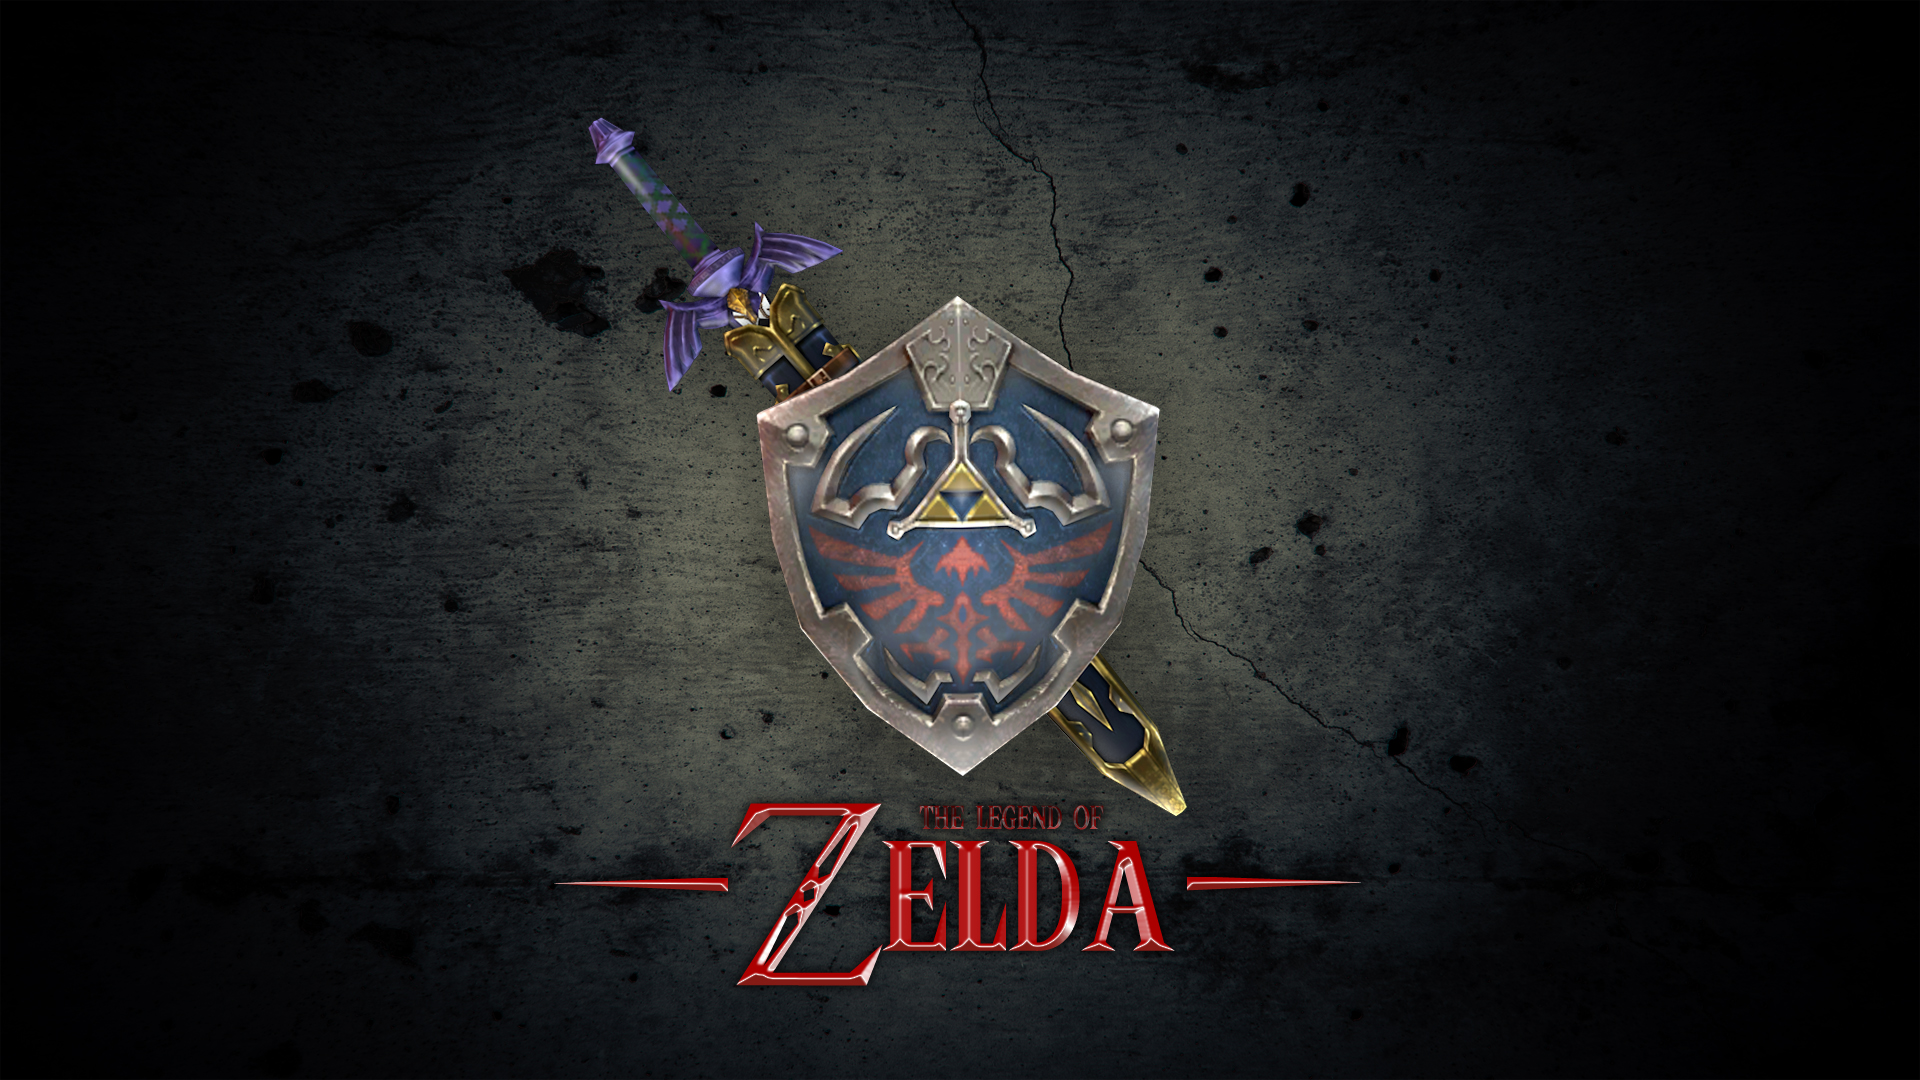 The Legend Of Zelda Wallpapers, Pictures, Images